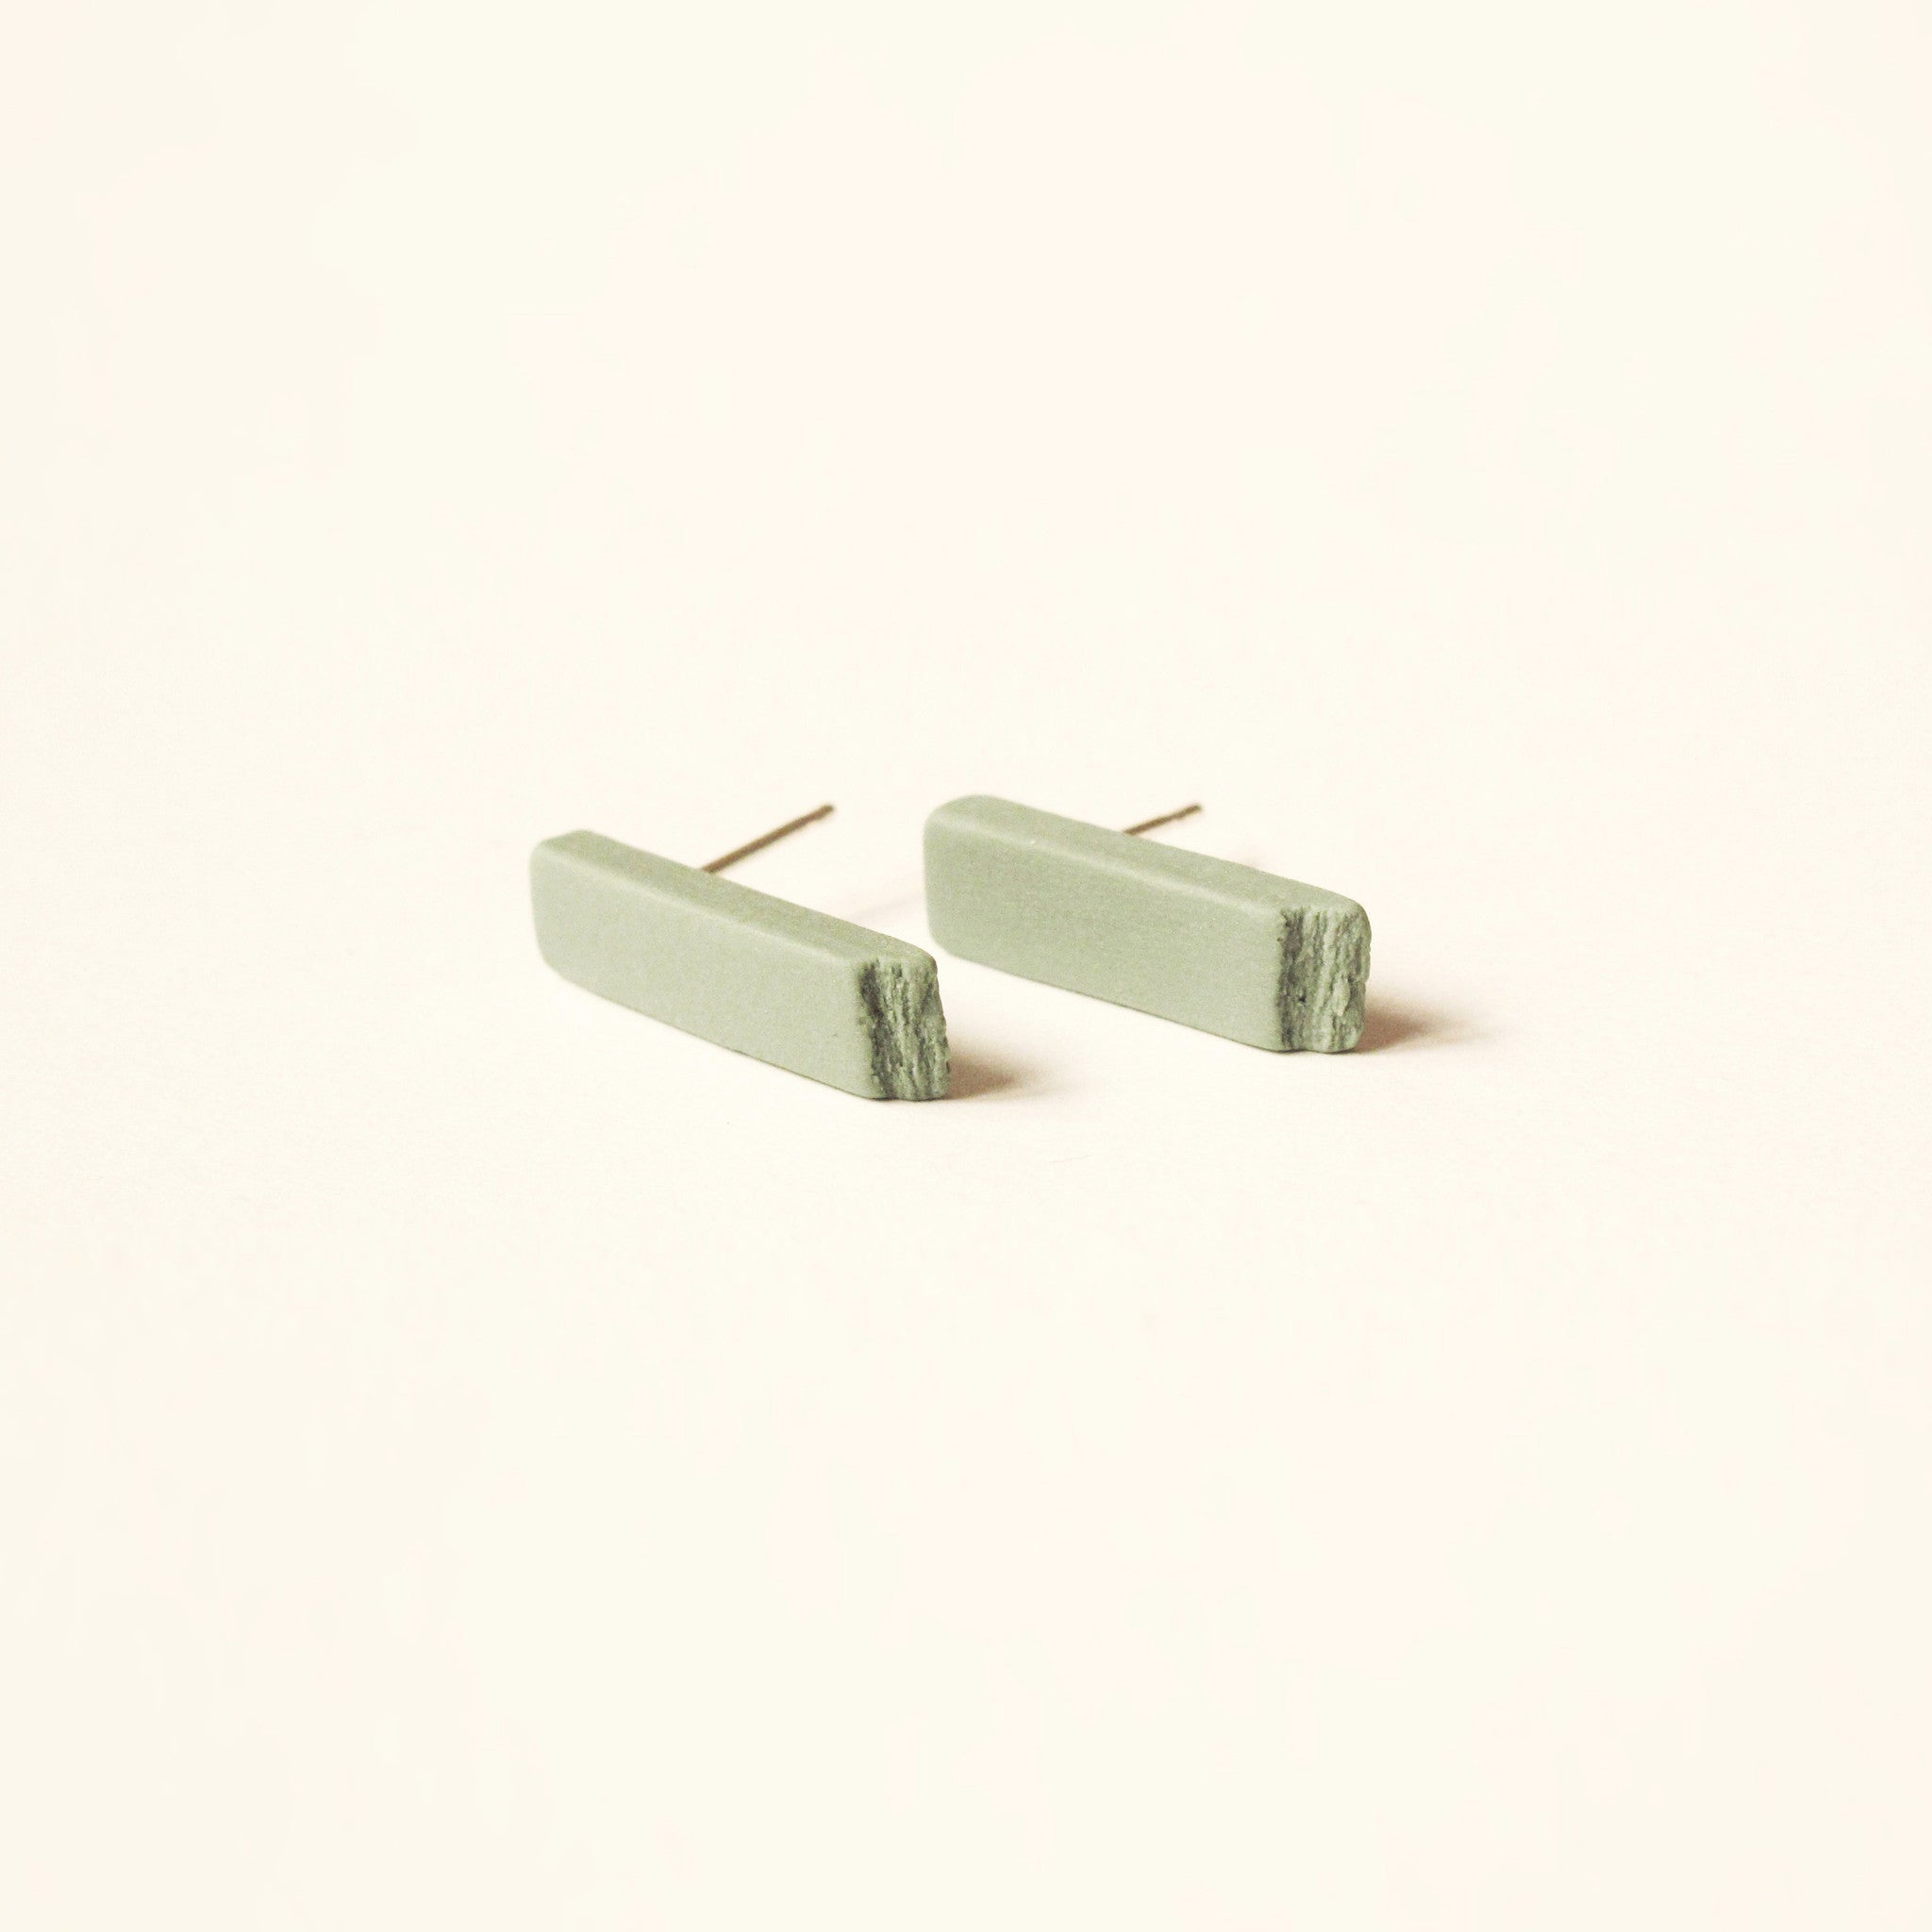 Ceramic Earrings, Sticks - Green